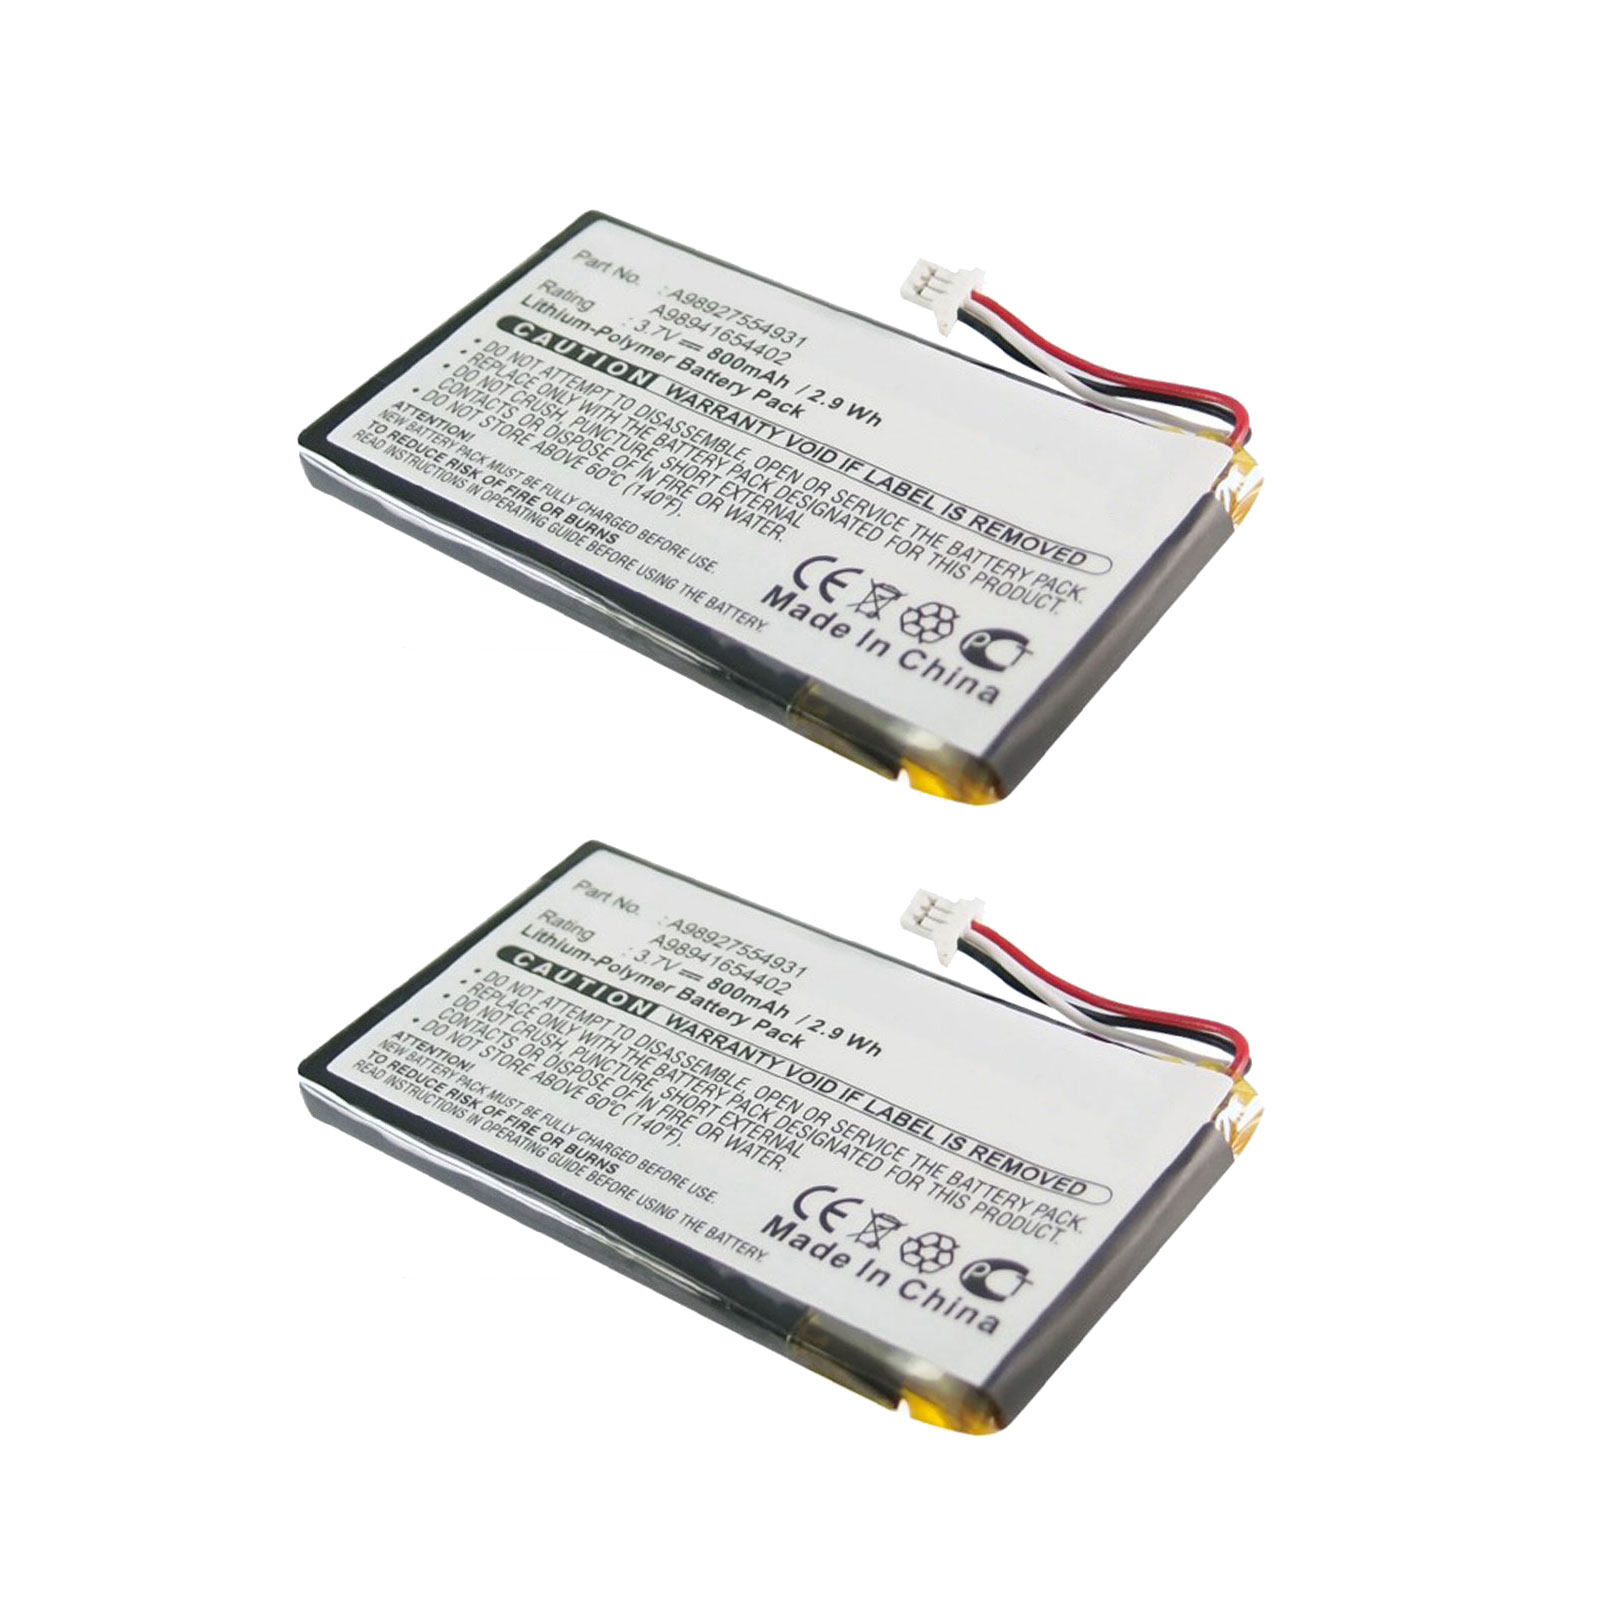 2pc ereader battery for sony prs 600 prs 600 rc prs 600 bc prb 6 cs rh ebay com Sony Tablet Reader Sony PRS -300 Battery